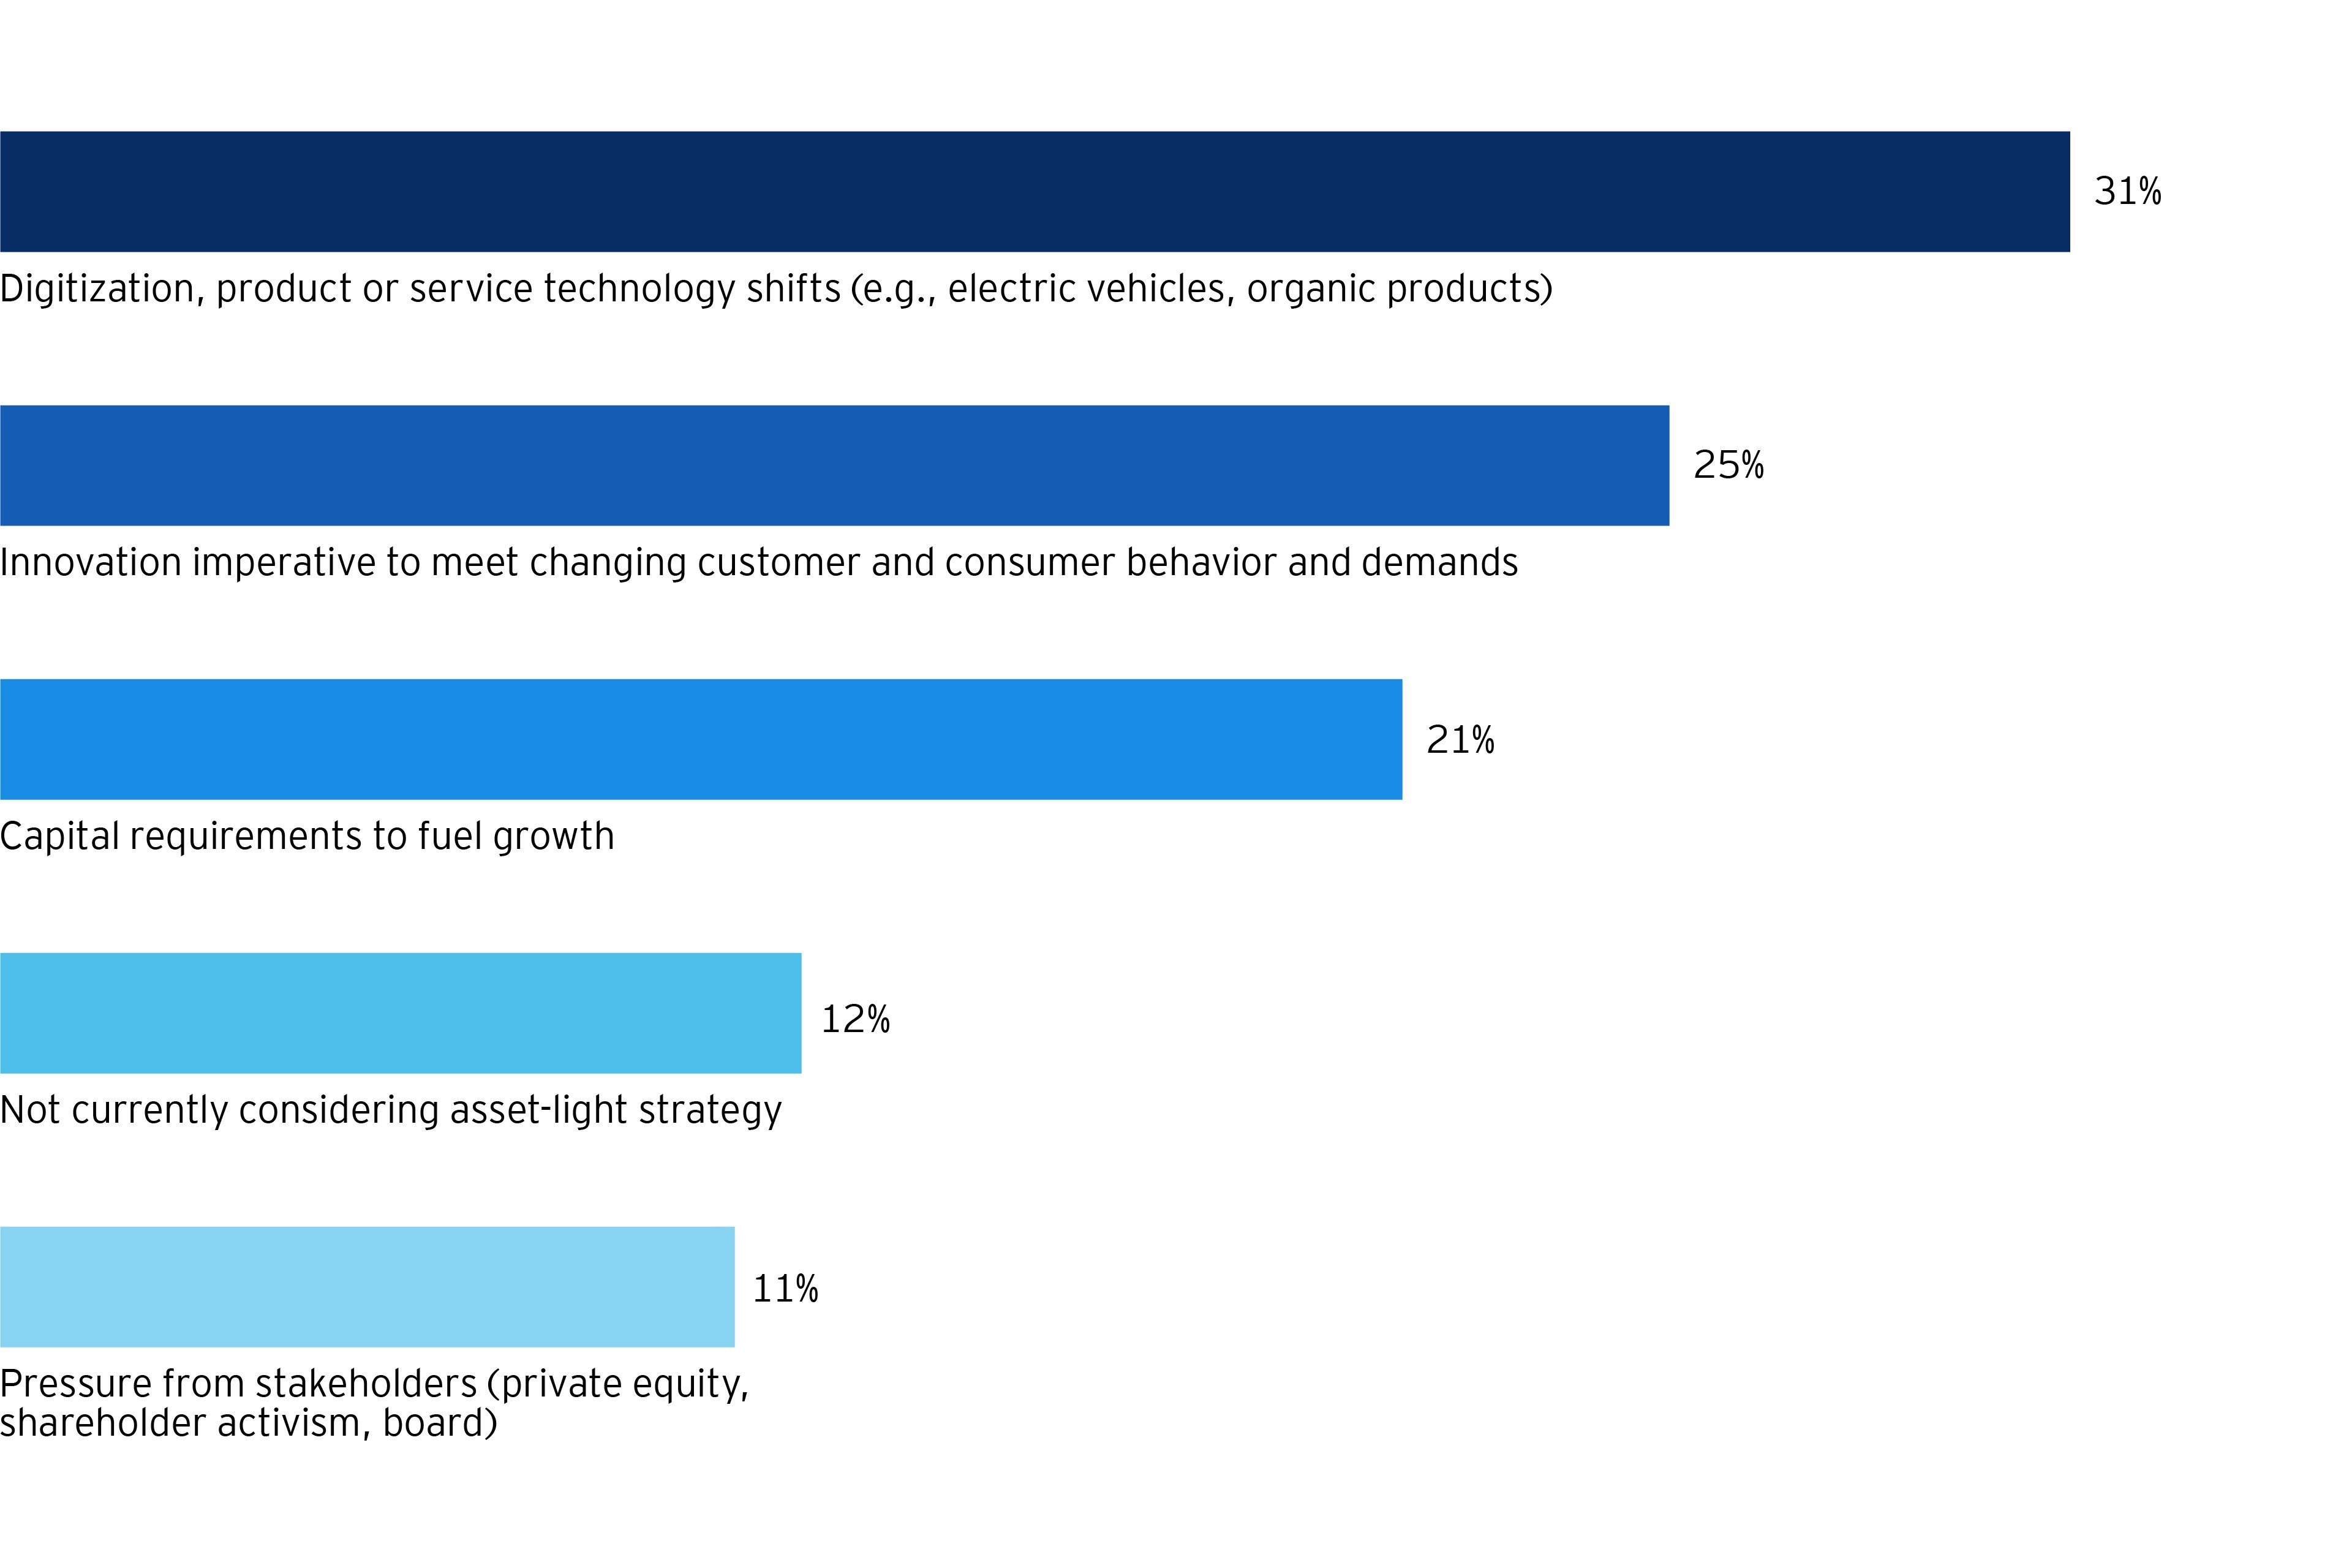 What disruptive forces are driving you to consider an asset-light strategy